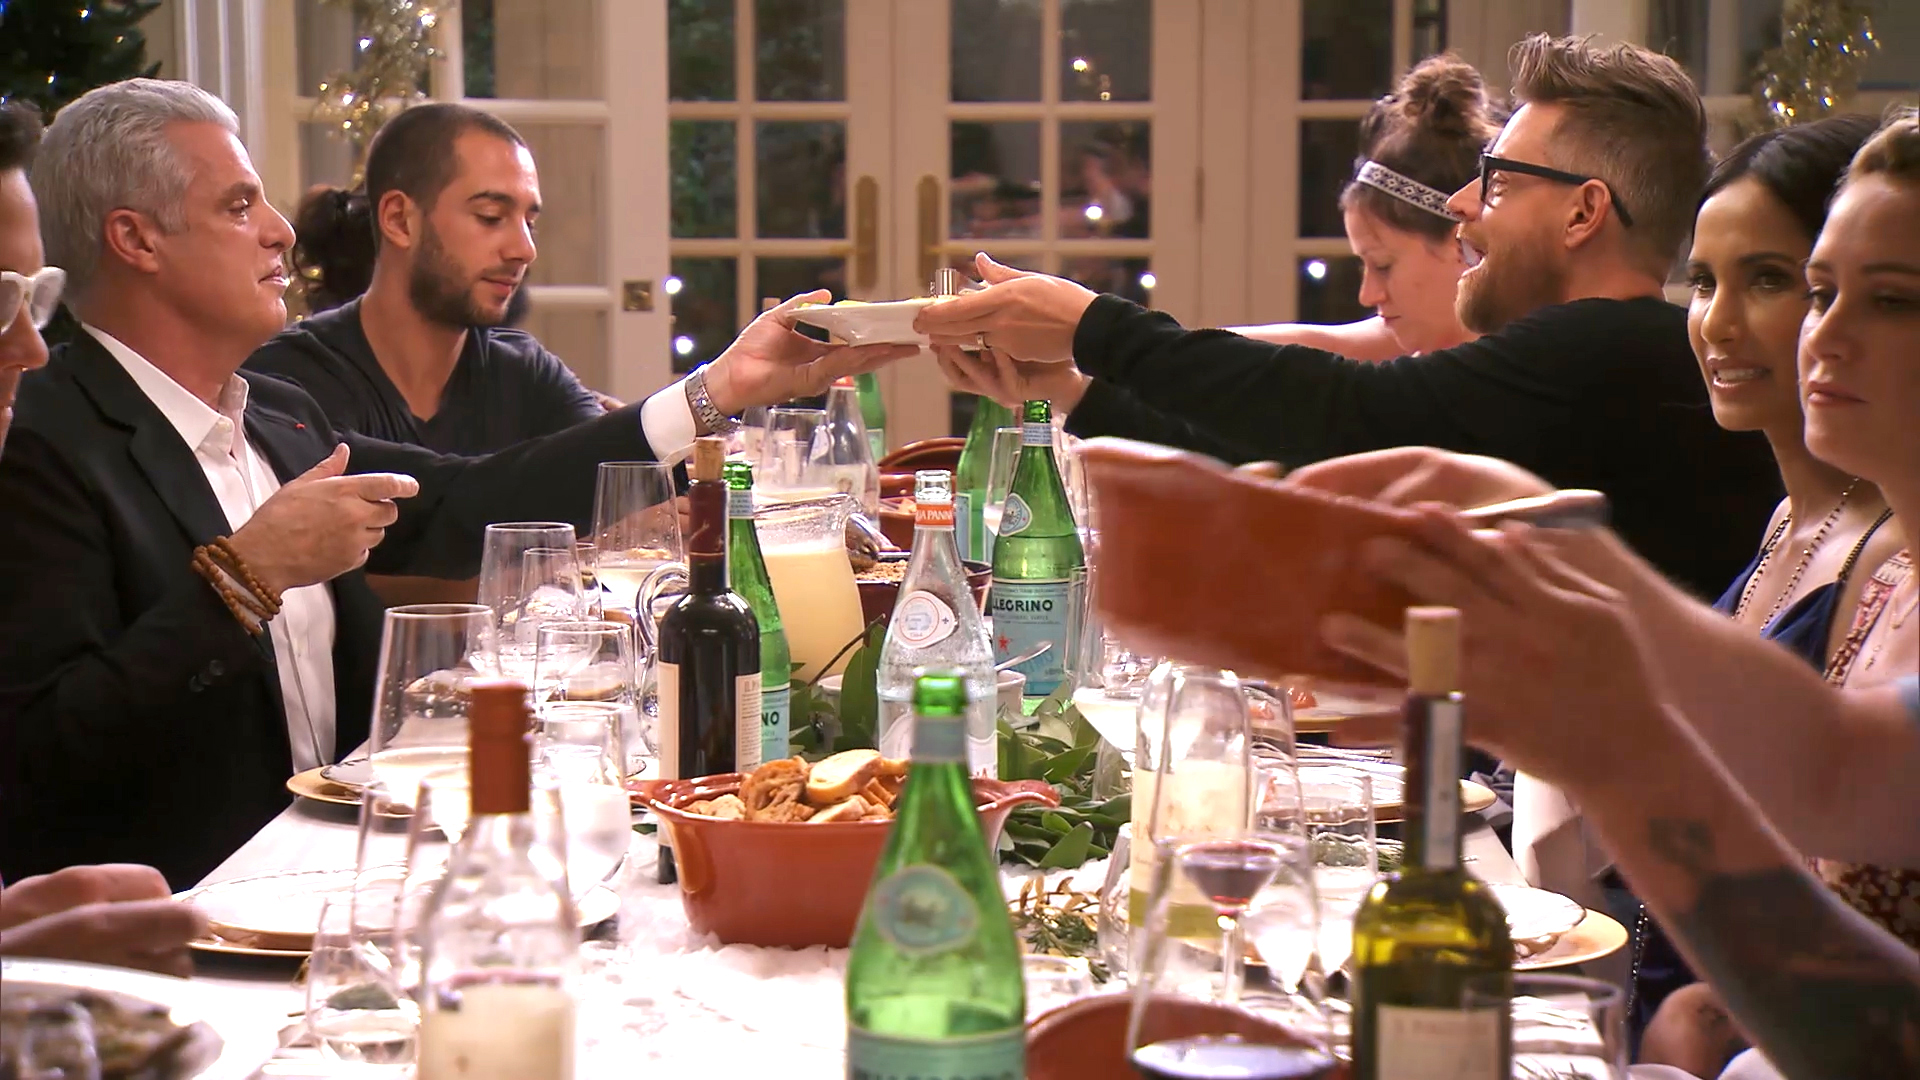 Padma Lakshmi and the Cheftestants Share Their Holiday Traditions